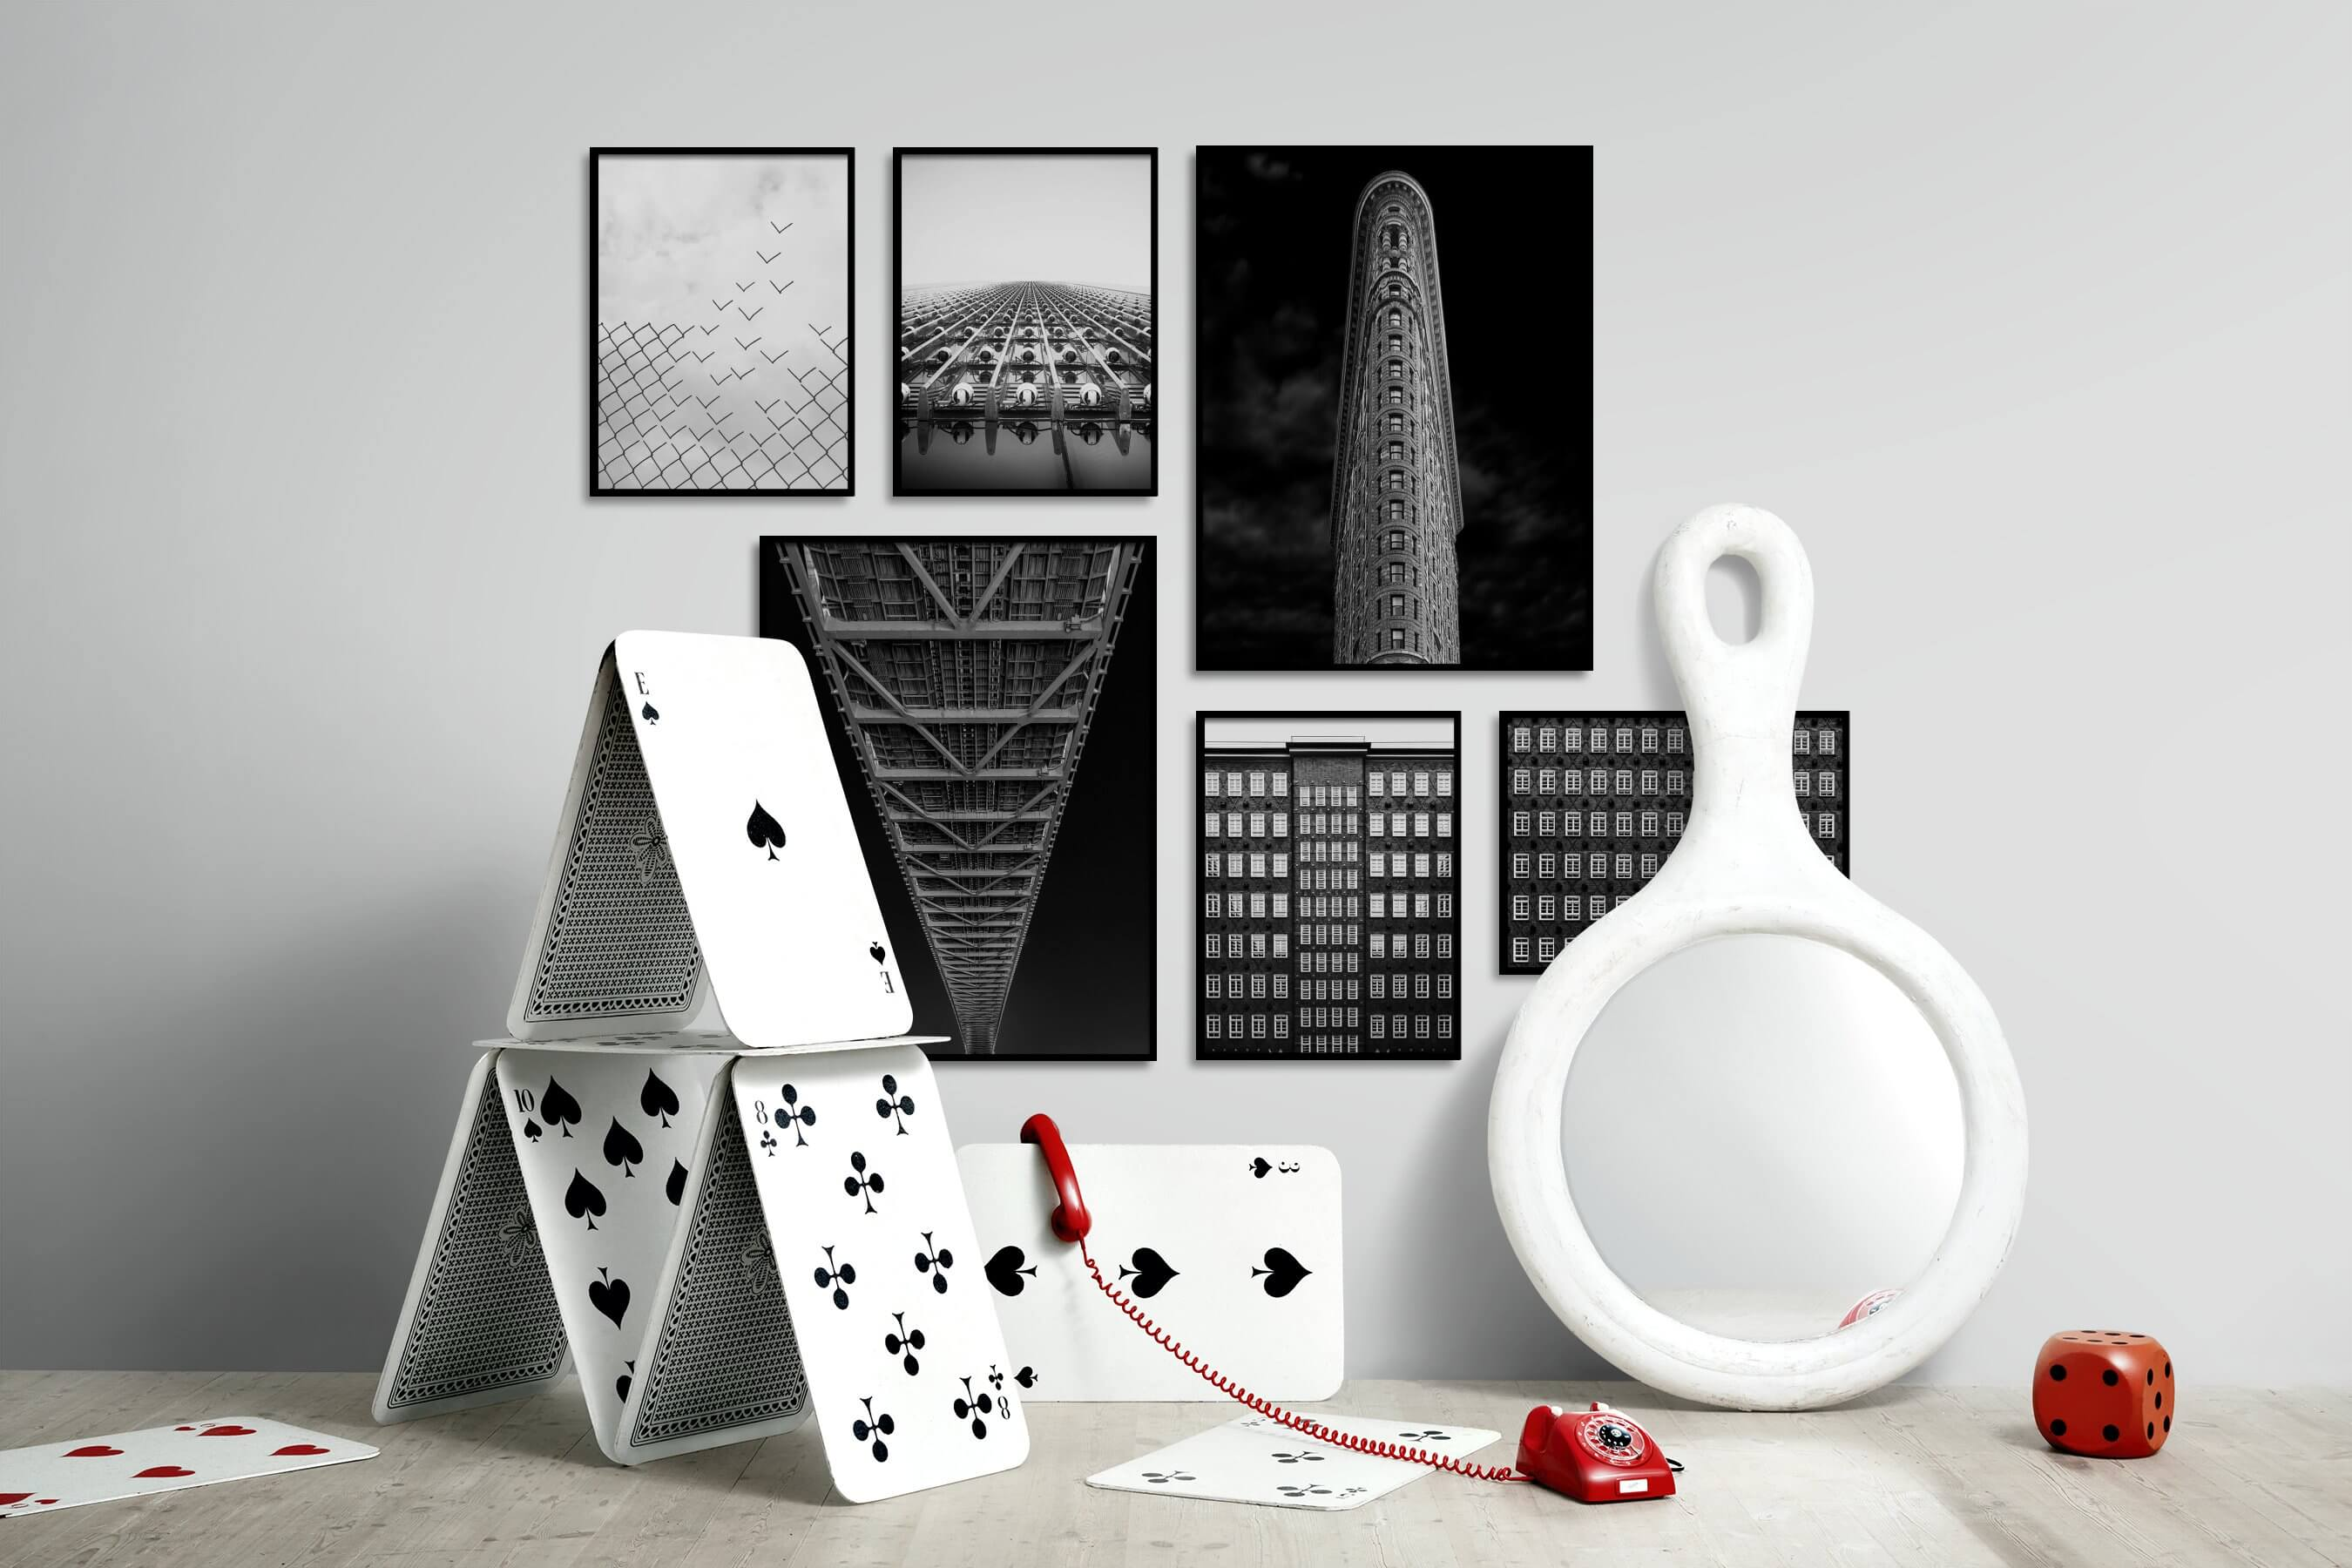 Gallery wall idea with six framed pictures arranged on a wall depicting Black & White, For the Moderate, Dark Tones, City Life, For the Minimalist, and Americana